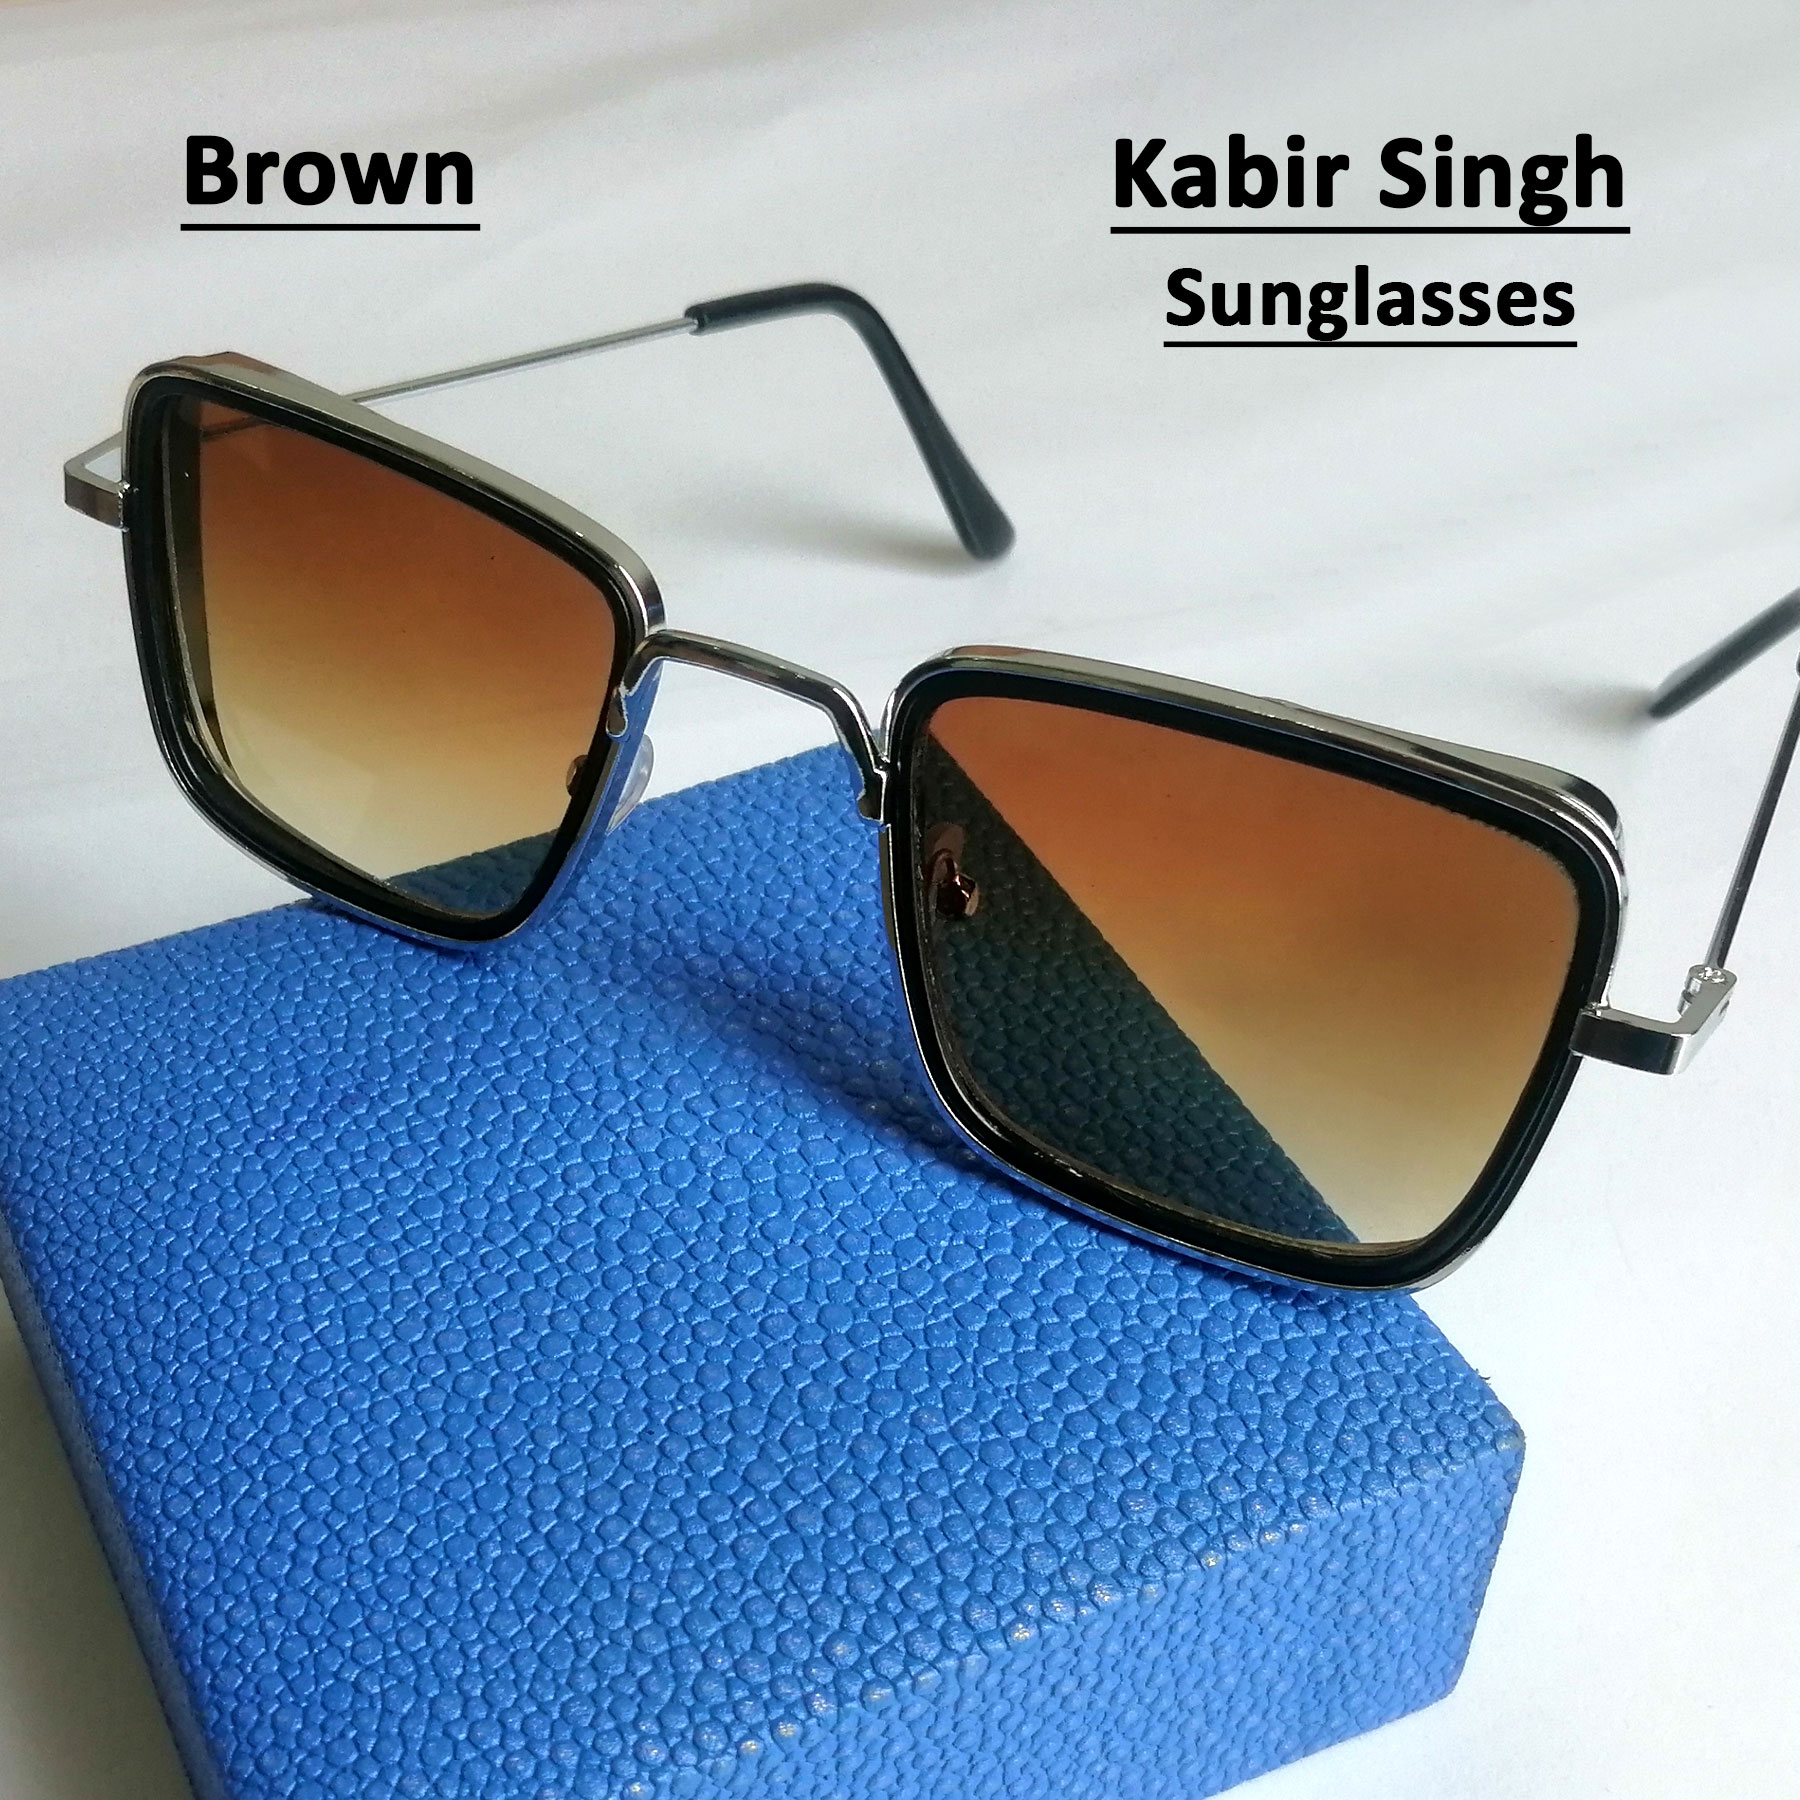 Fashion Sun Glasses for Men in Kabir Singh Style New Arrival Square Shape Metal Frame Sunglasses For Men Party Glasses Eyewear For Adults